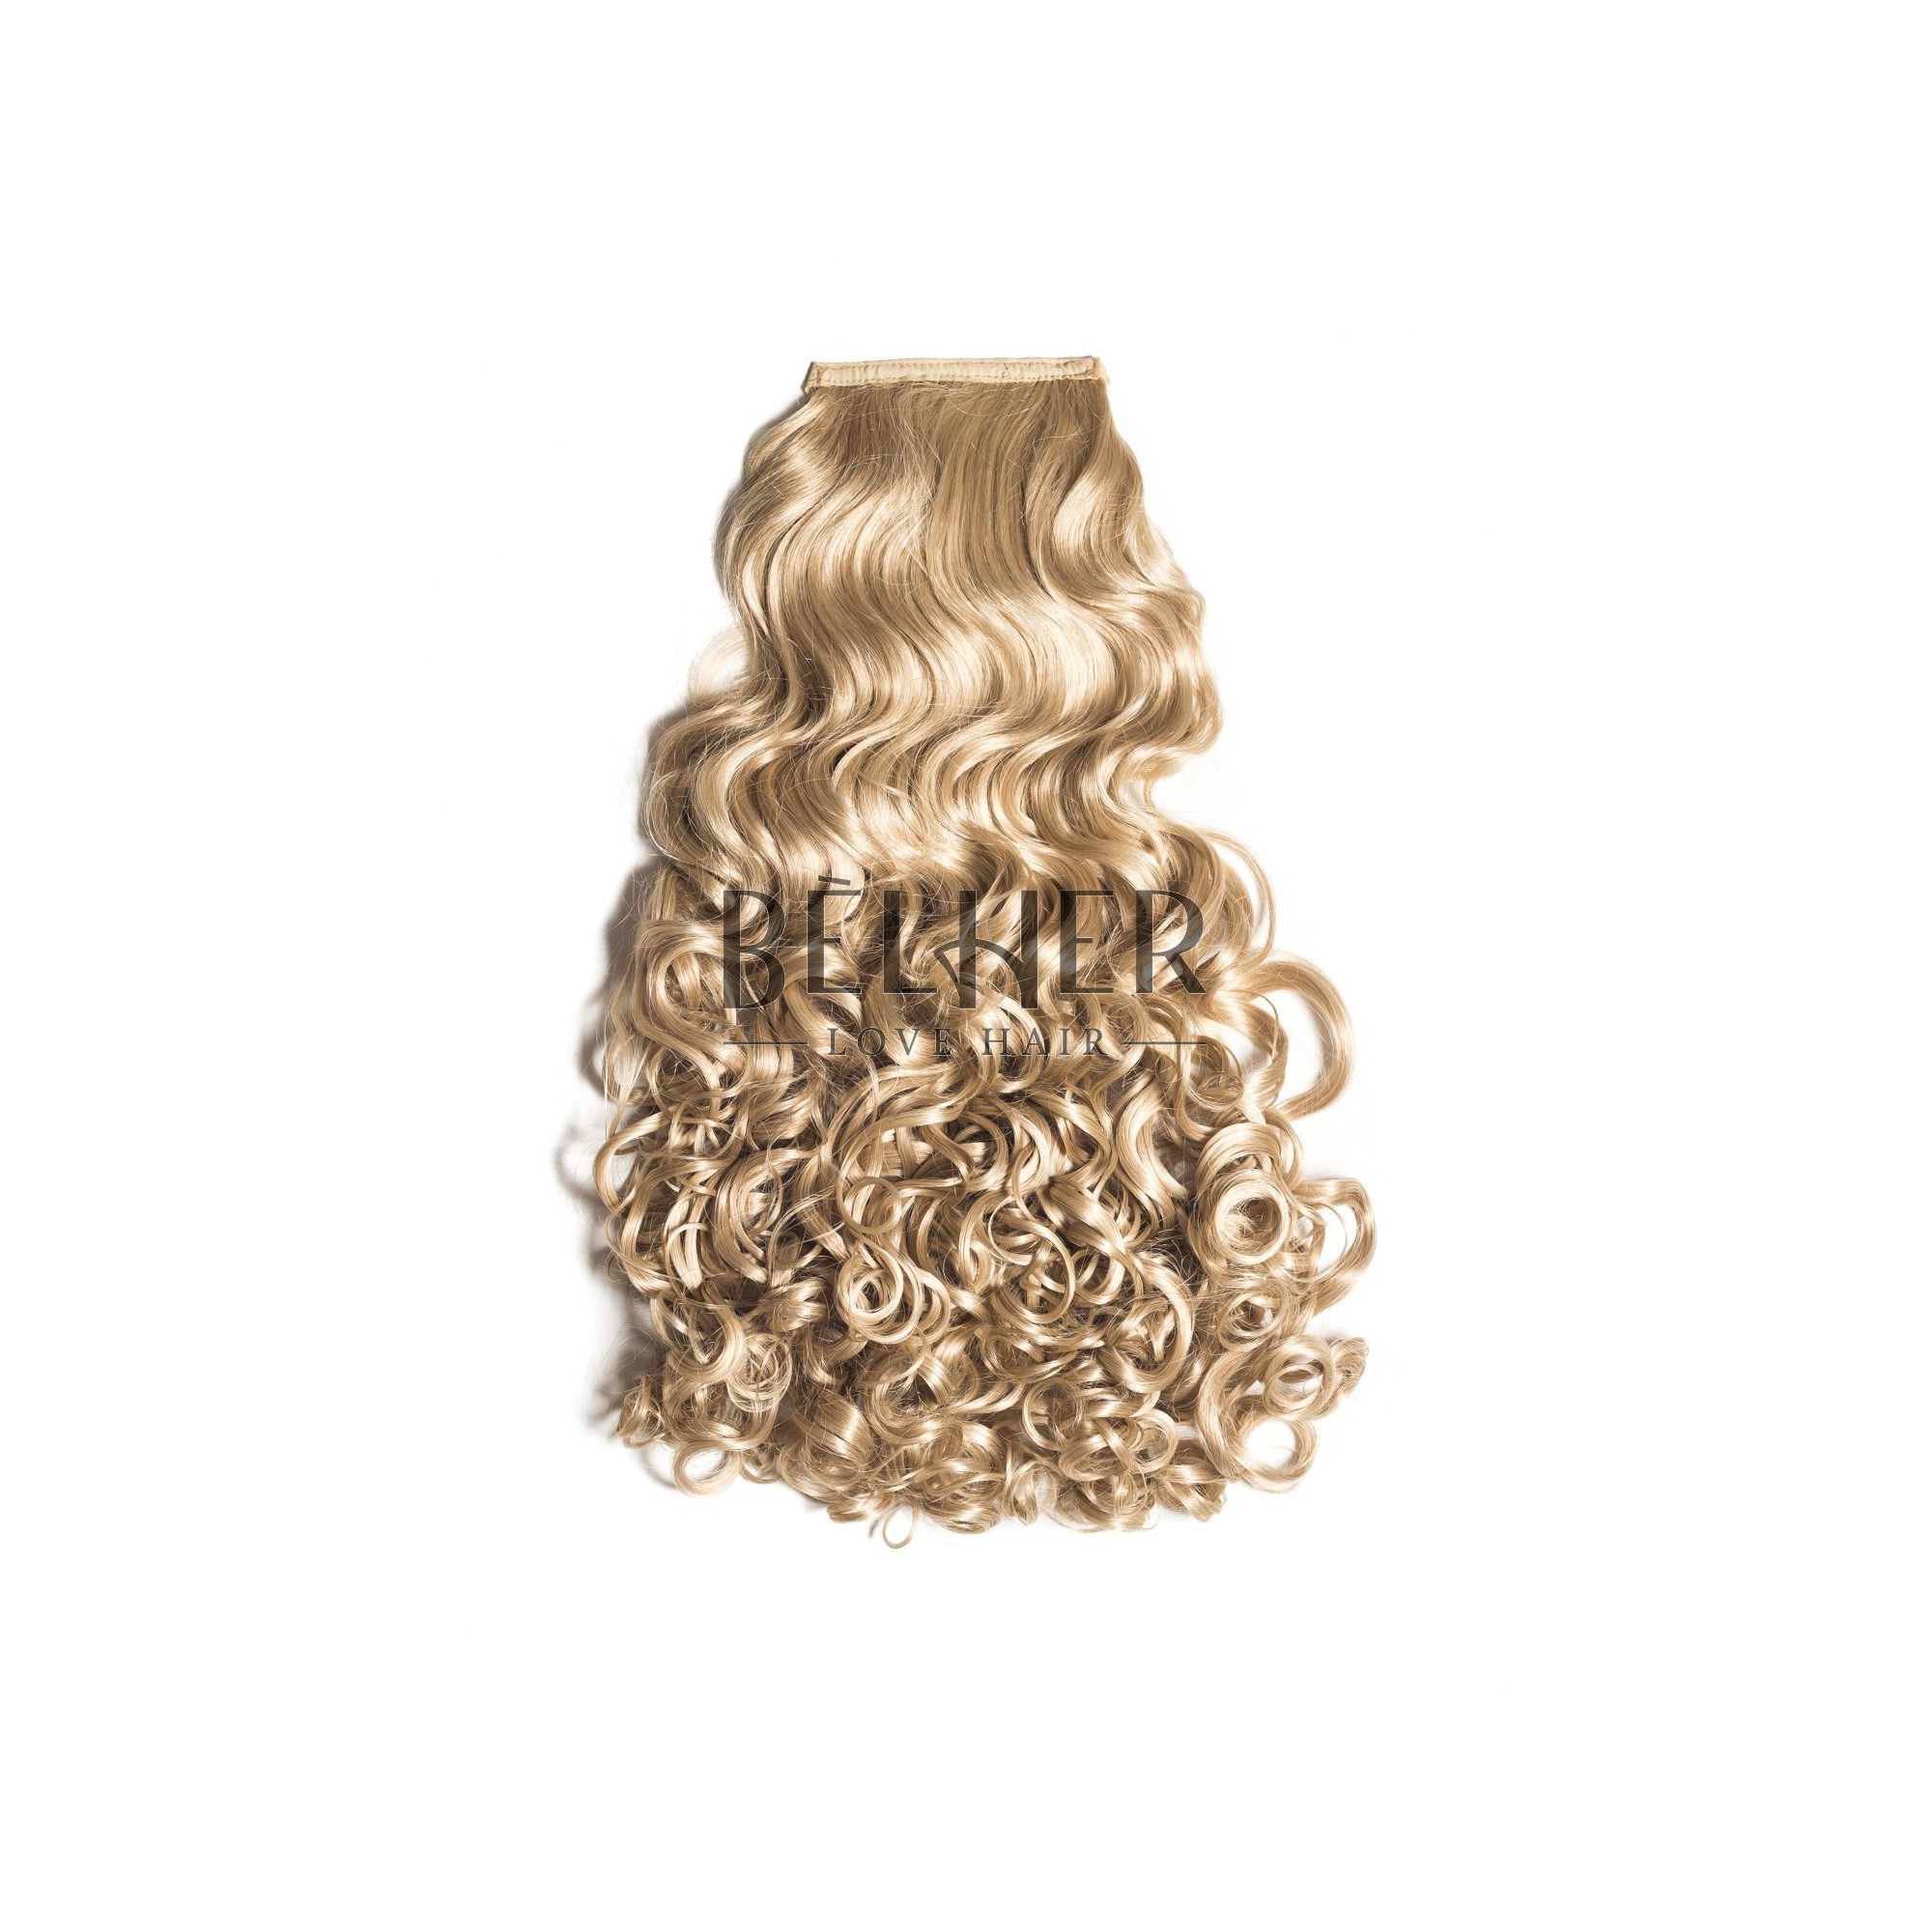 Coada Par Cret Blond Luminos